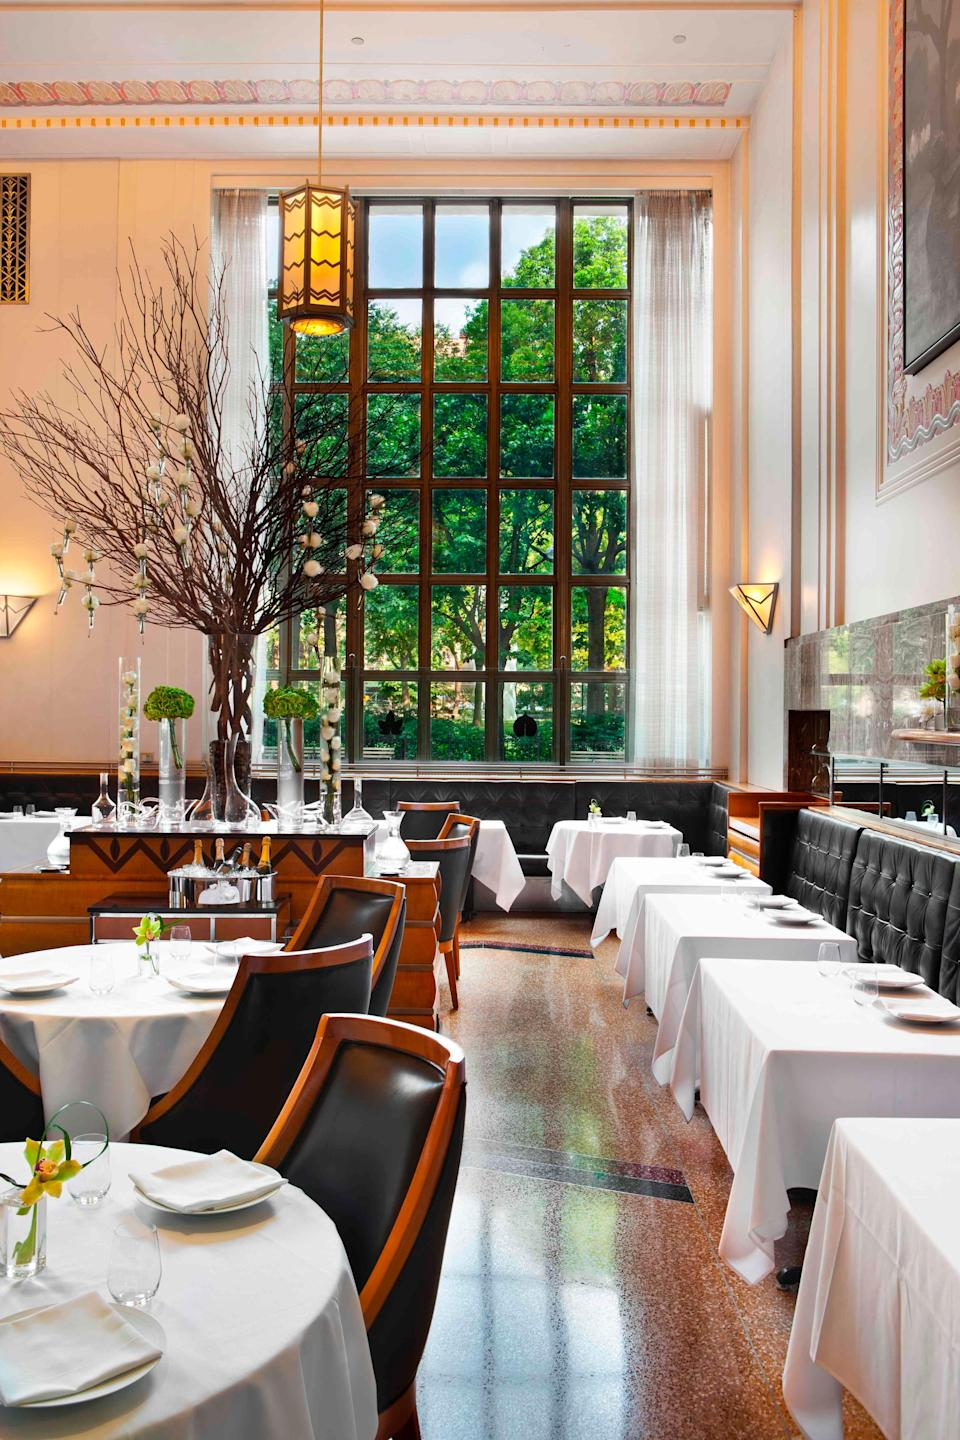 The dining room of Eleven Madison Park in New York.